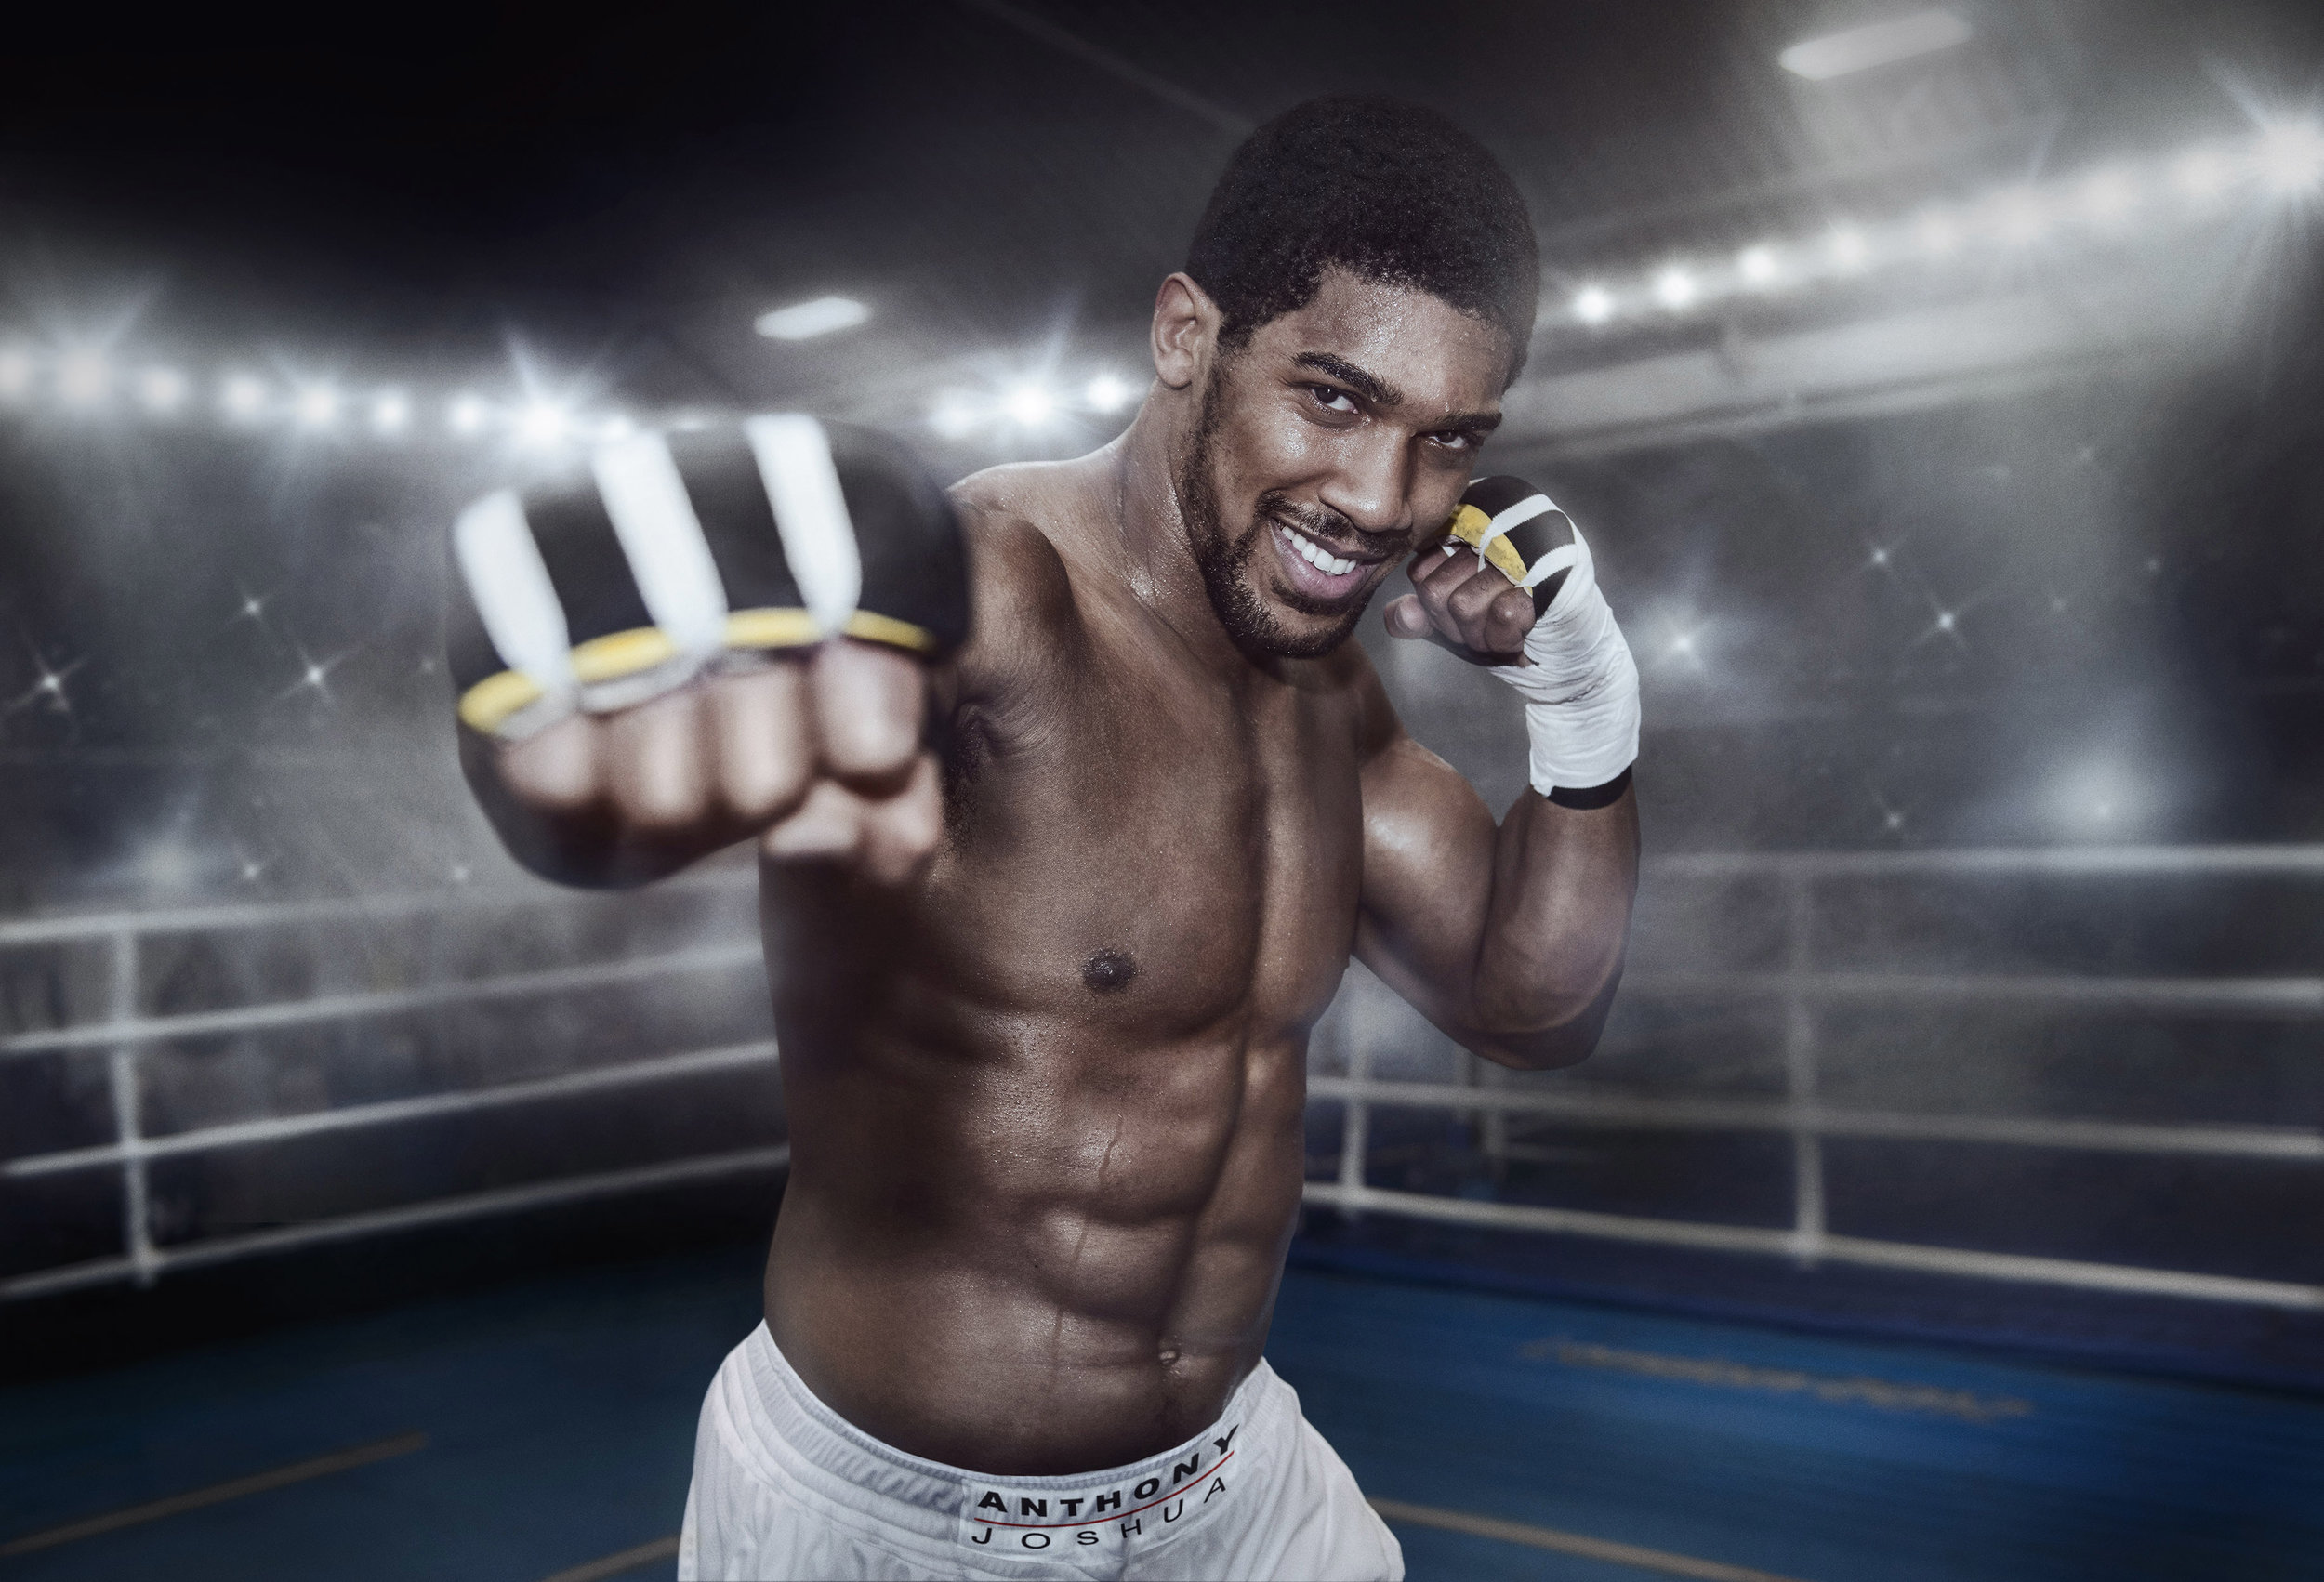 ANTHONY JOSHUA PORTRAIT01.jpg